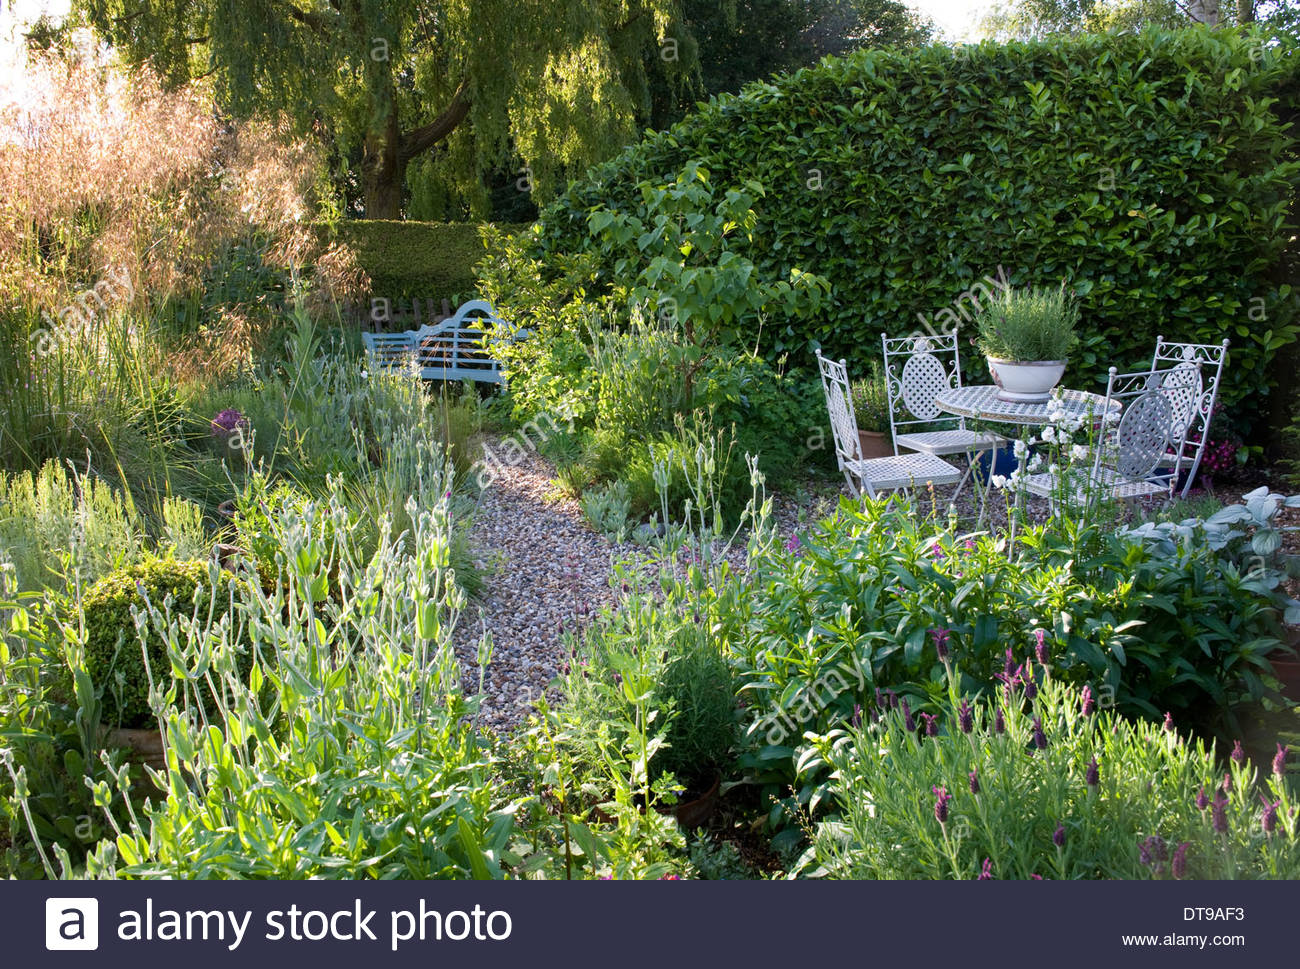 Country cottage garden - Stock Photo Wickets Saffron Walden Essex England Summer Country Cottage Garden Summer June Mid Summer Garden French Style White Metal Table